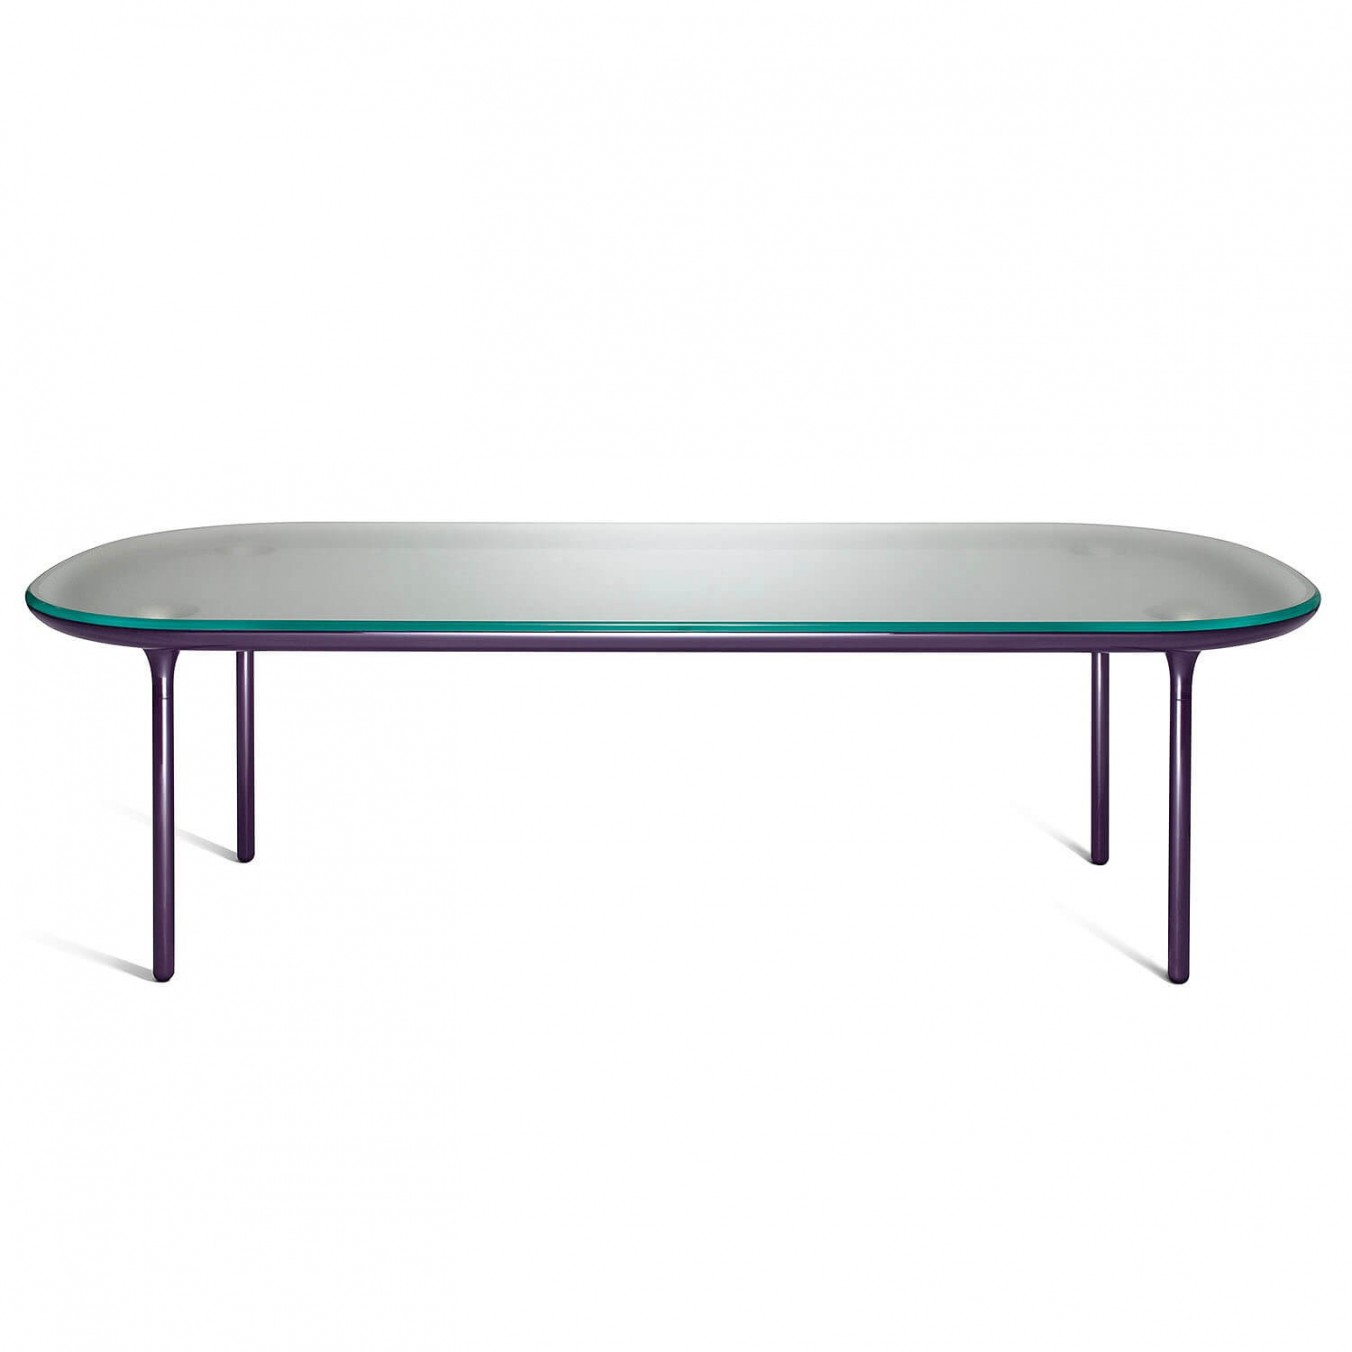 Flute Table 2m50